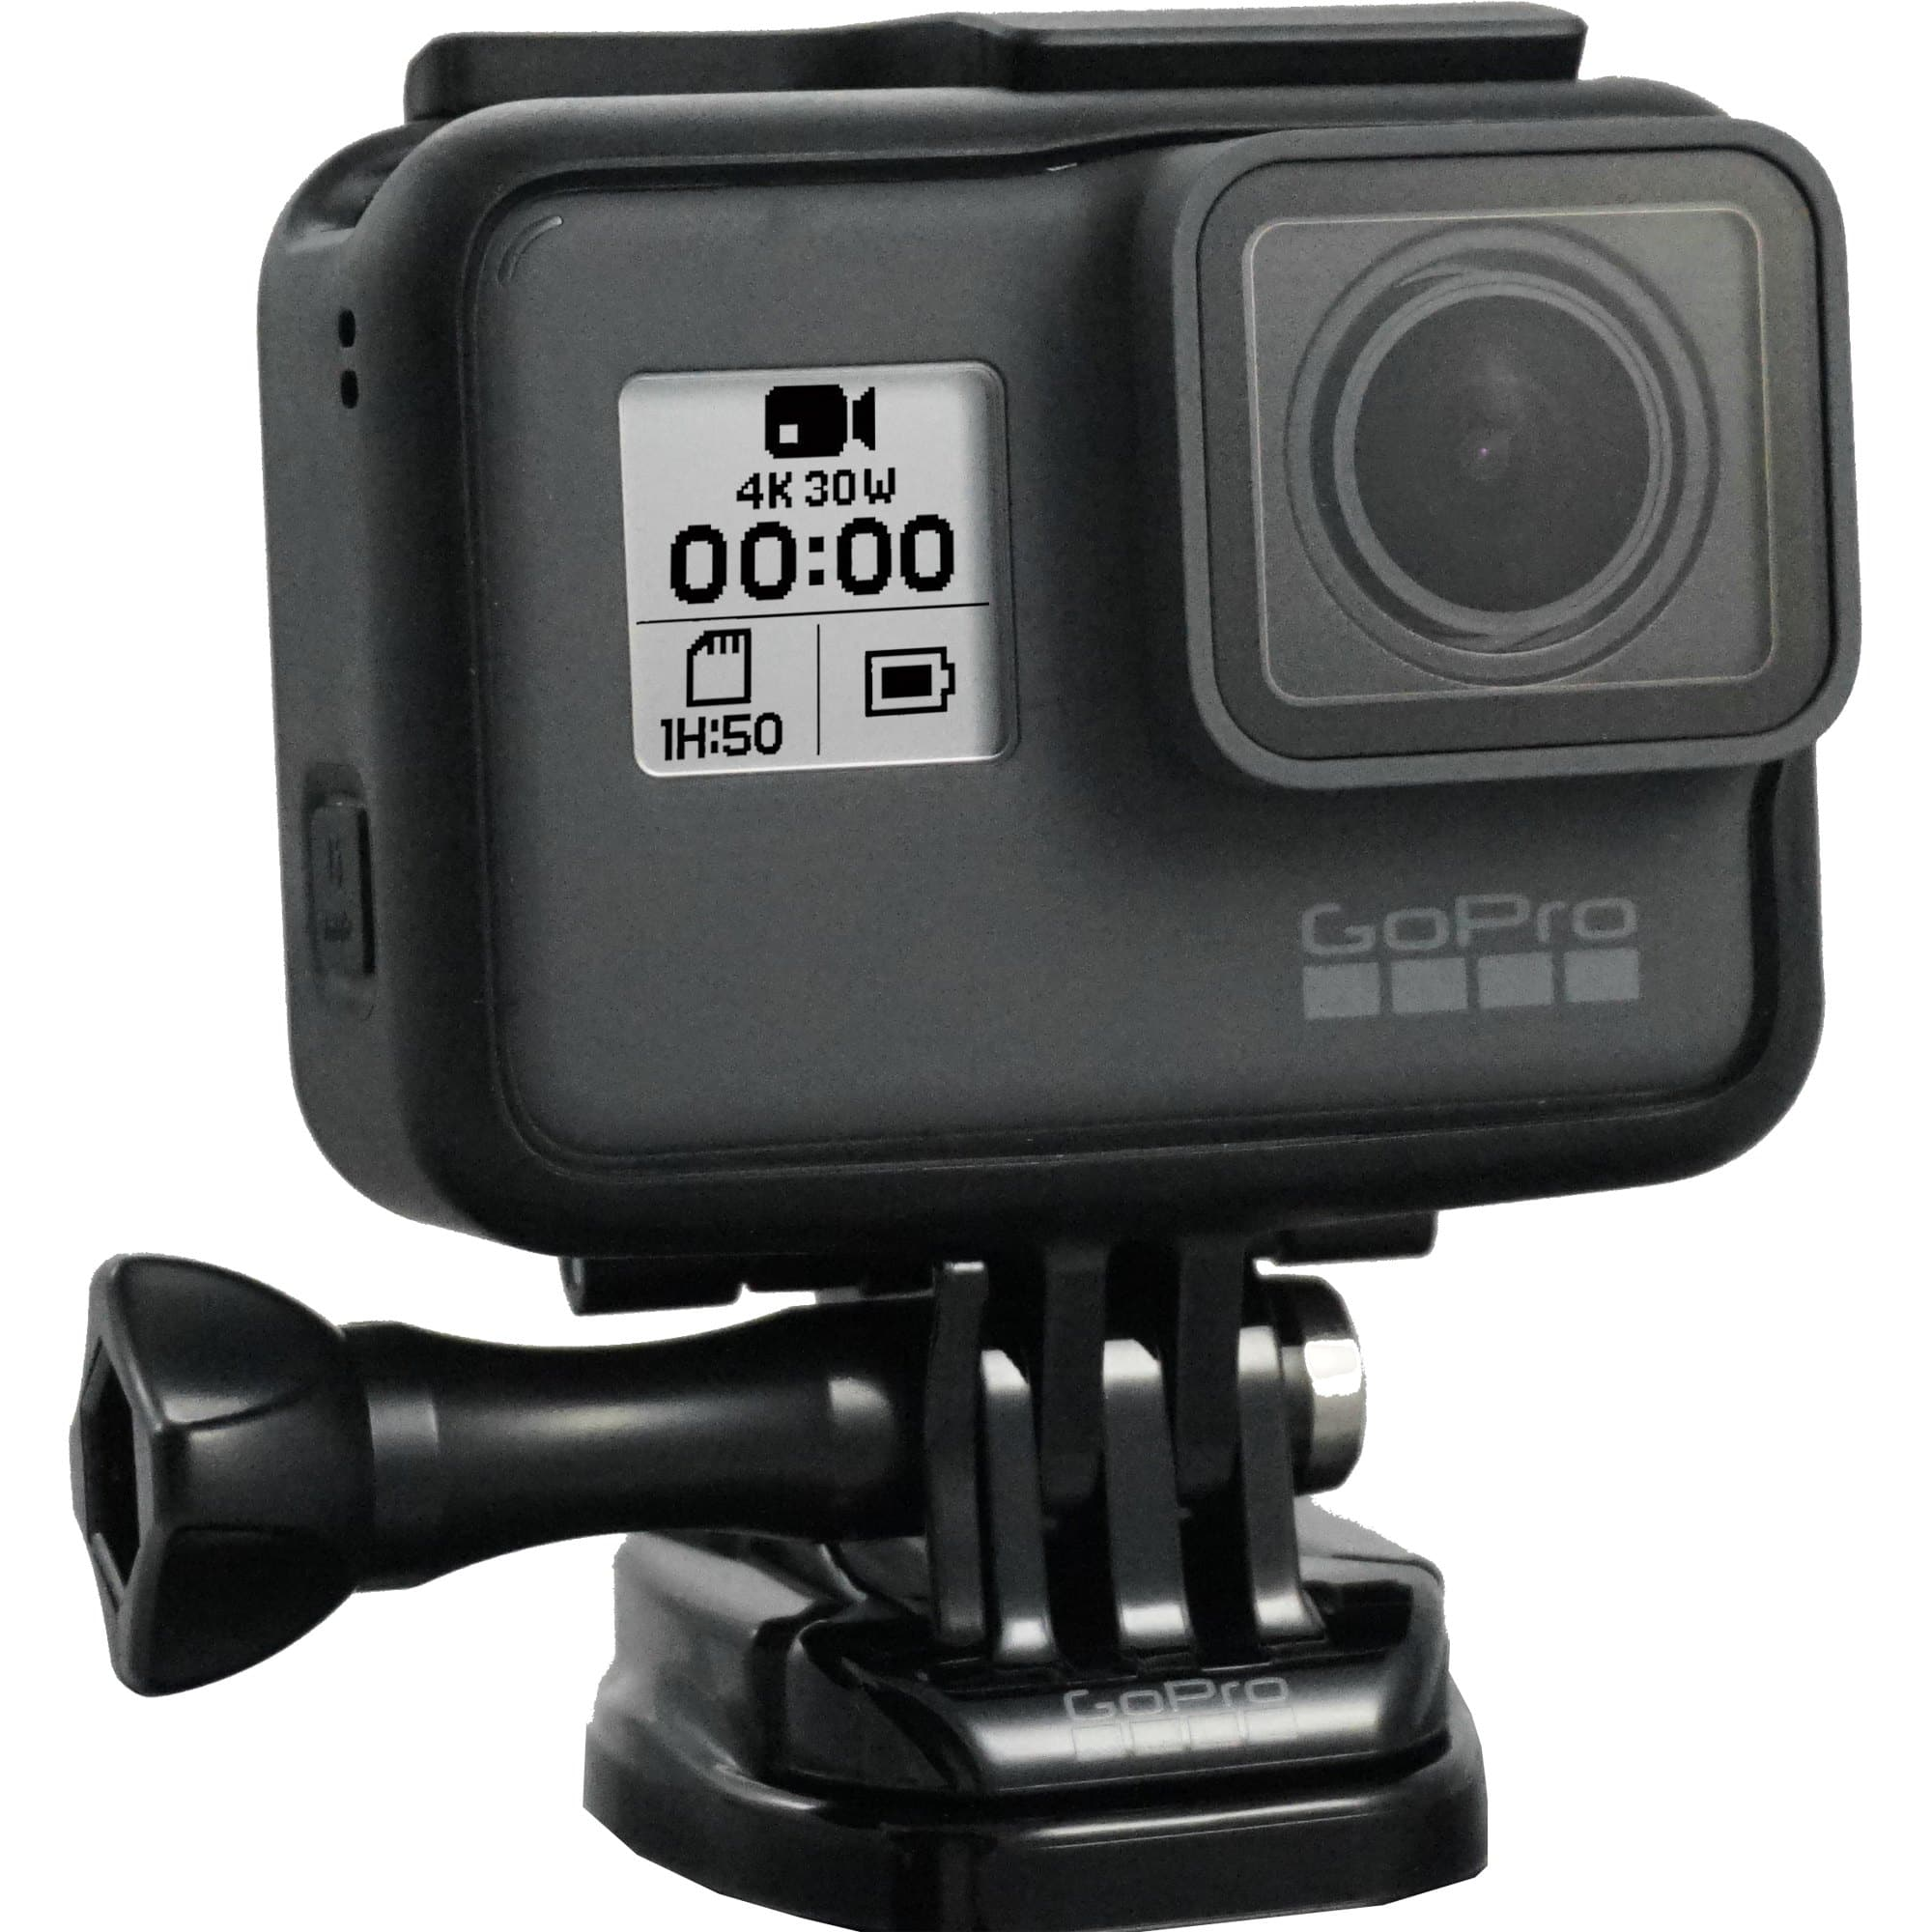 GoPro HERO5 Black Waterproof 4K Action Camera for $250 + Free Shipping